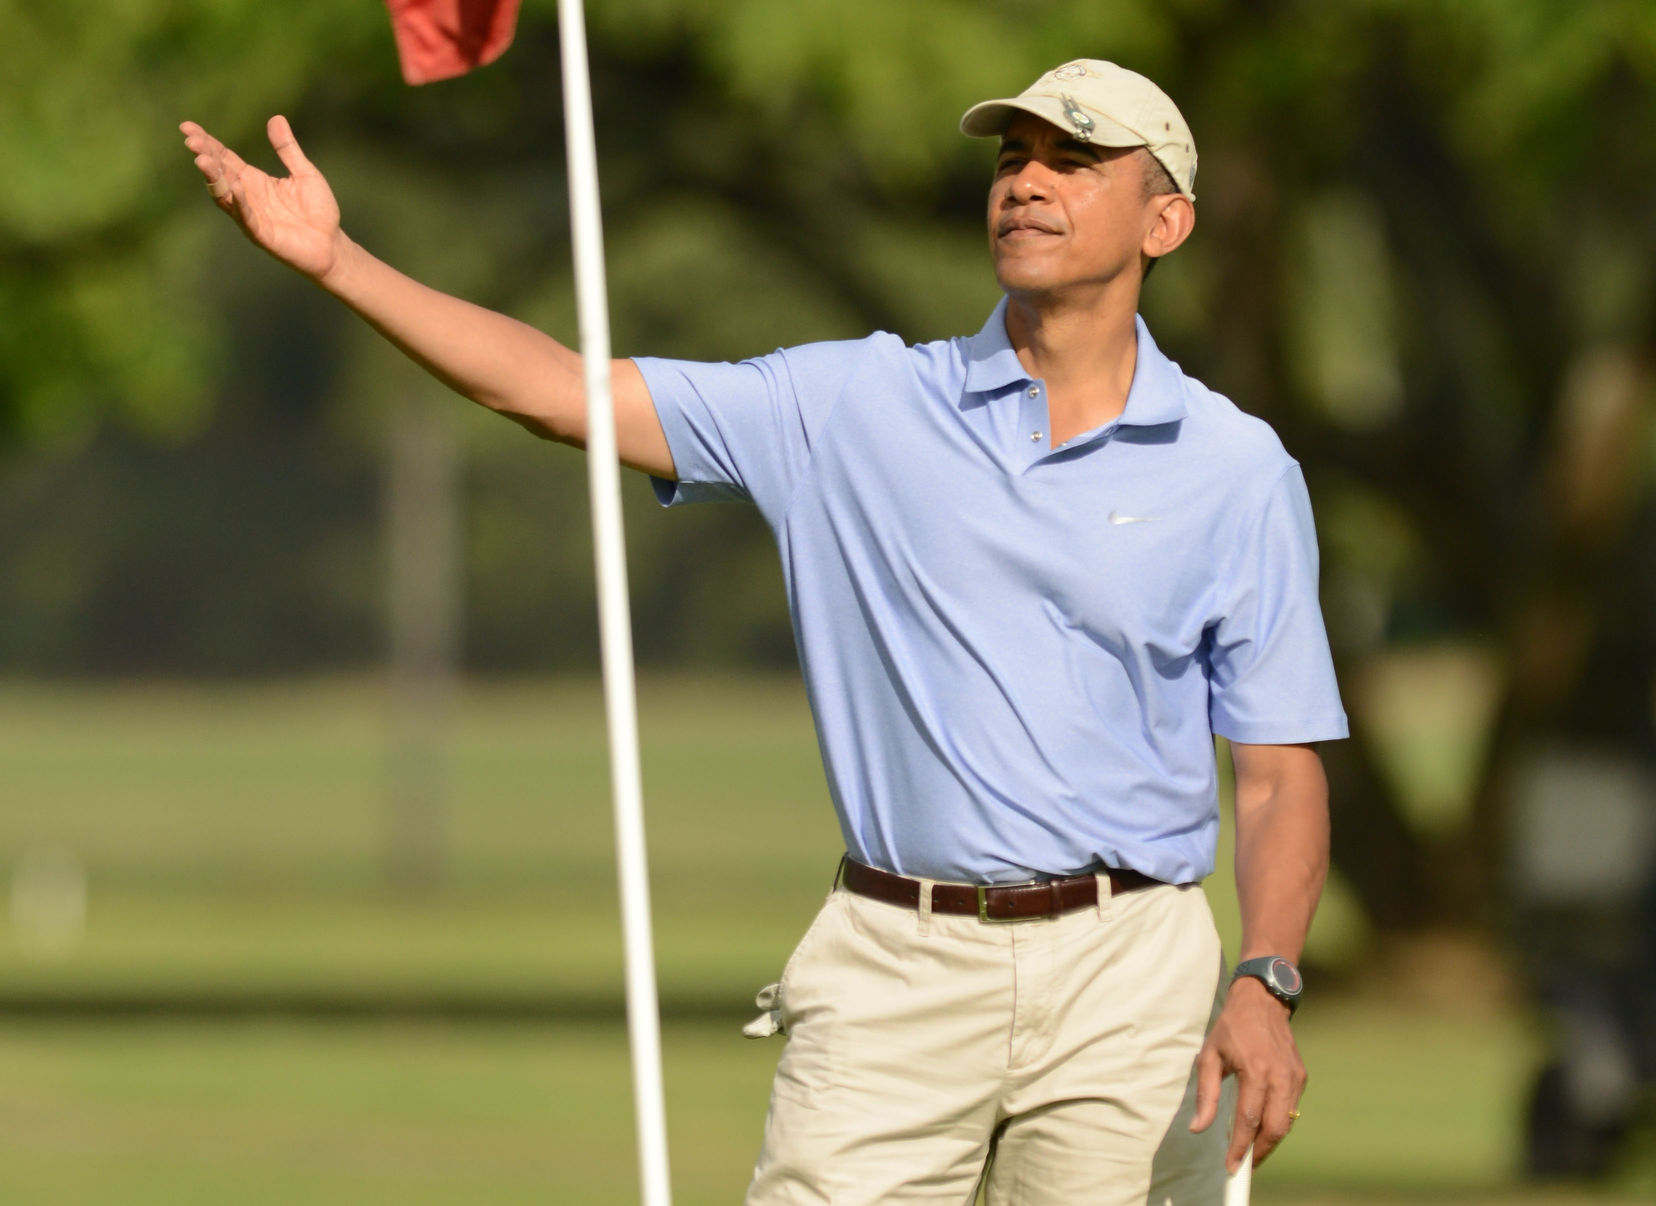 President Obama Plays Golf in Hawaii